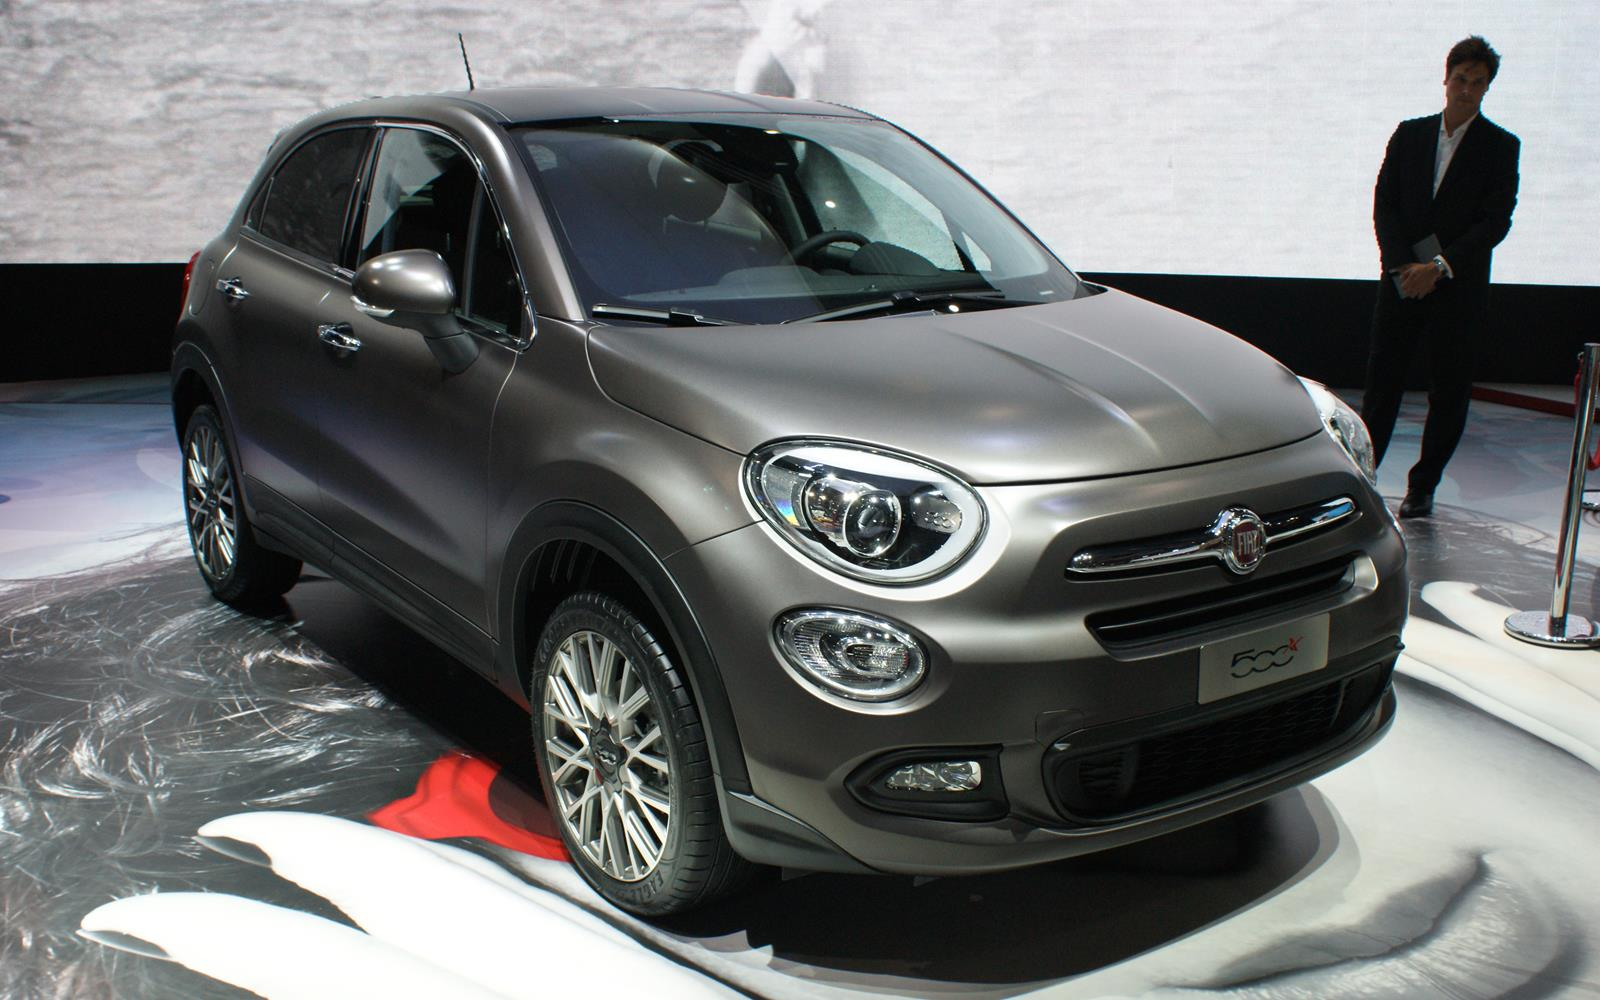 Paris Motor Show 2014 Fiat 500X FrontSeatDriver.co.uk